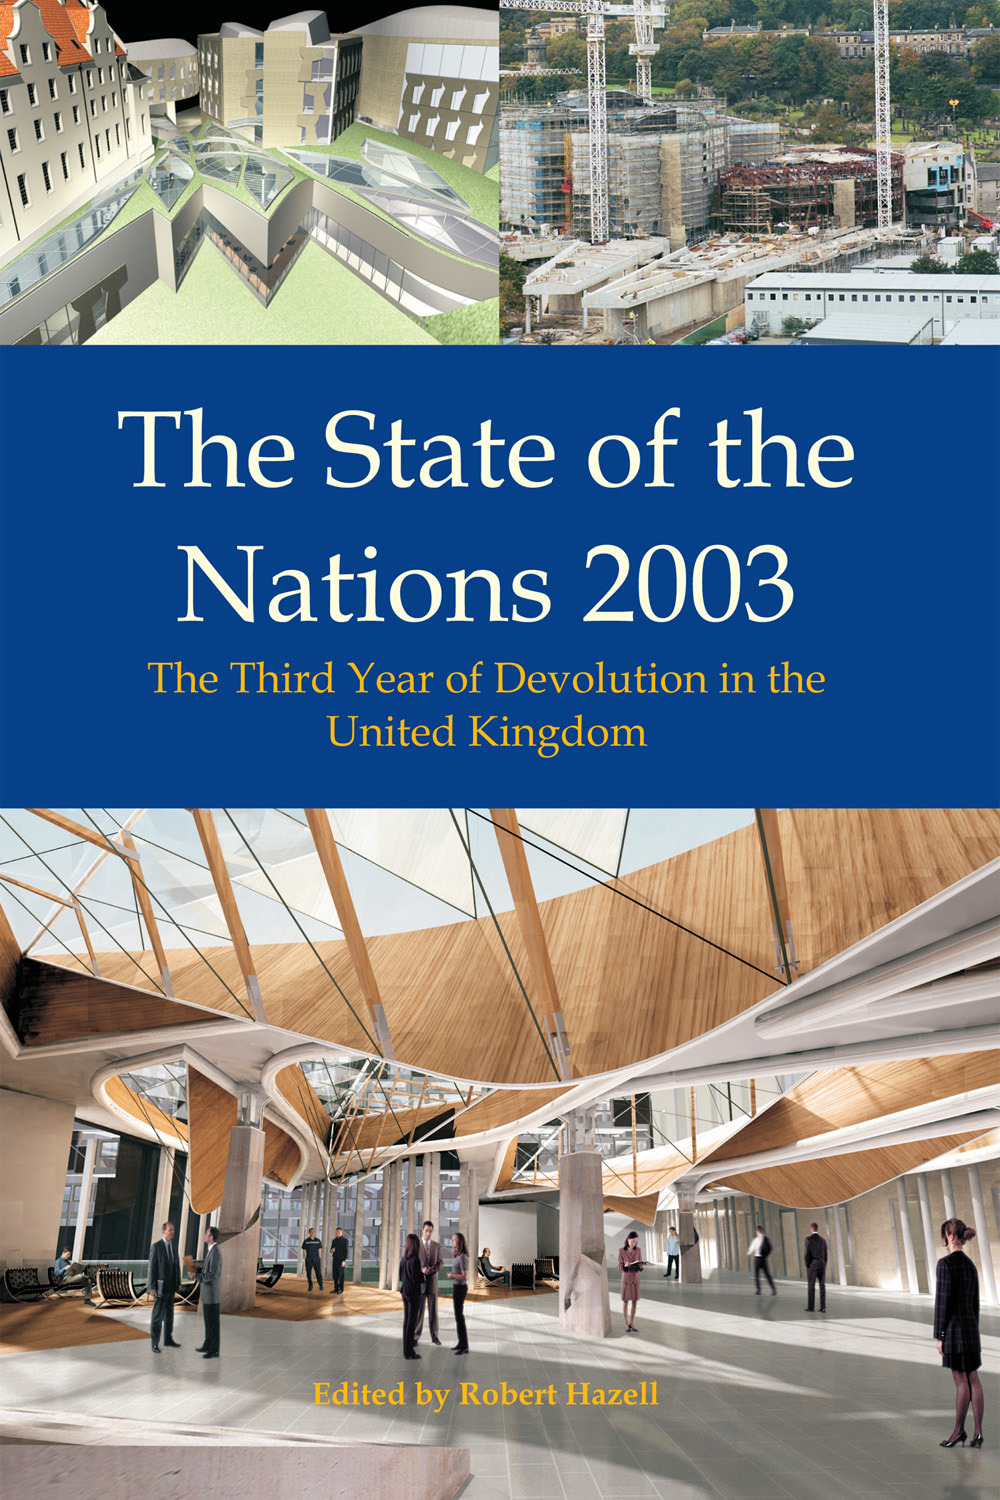 Hazell, Robert - The State of the Nations 2003, ebook